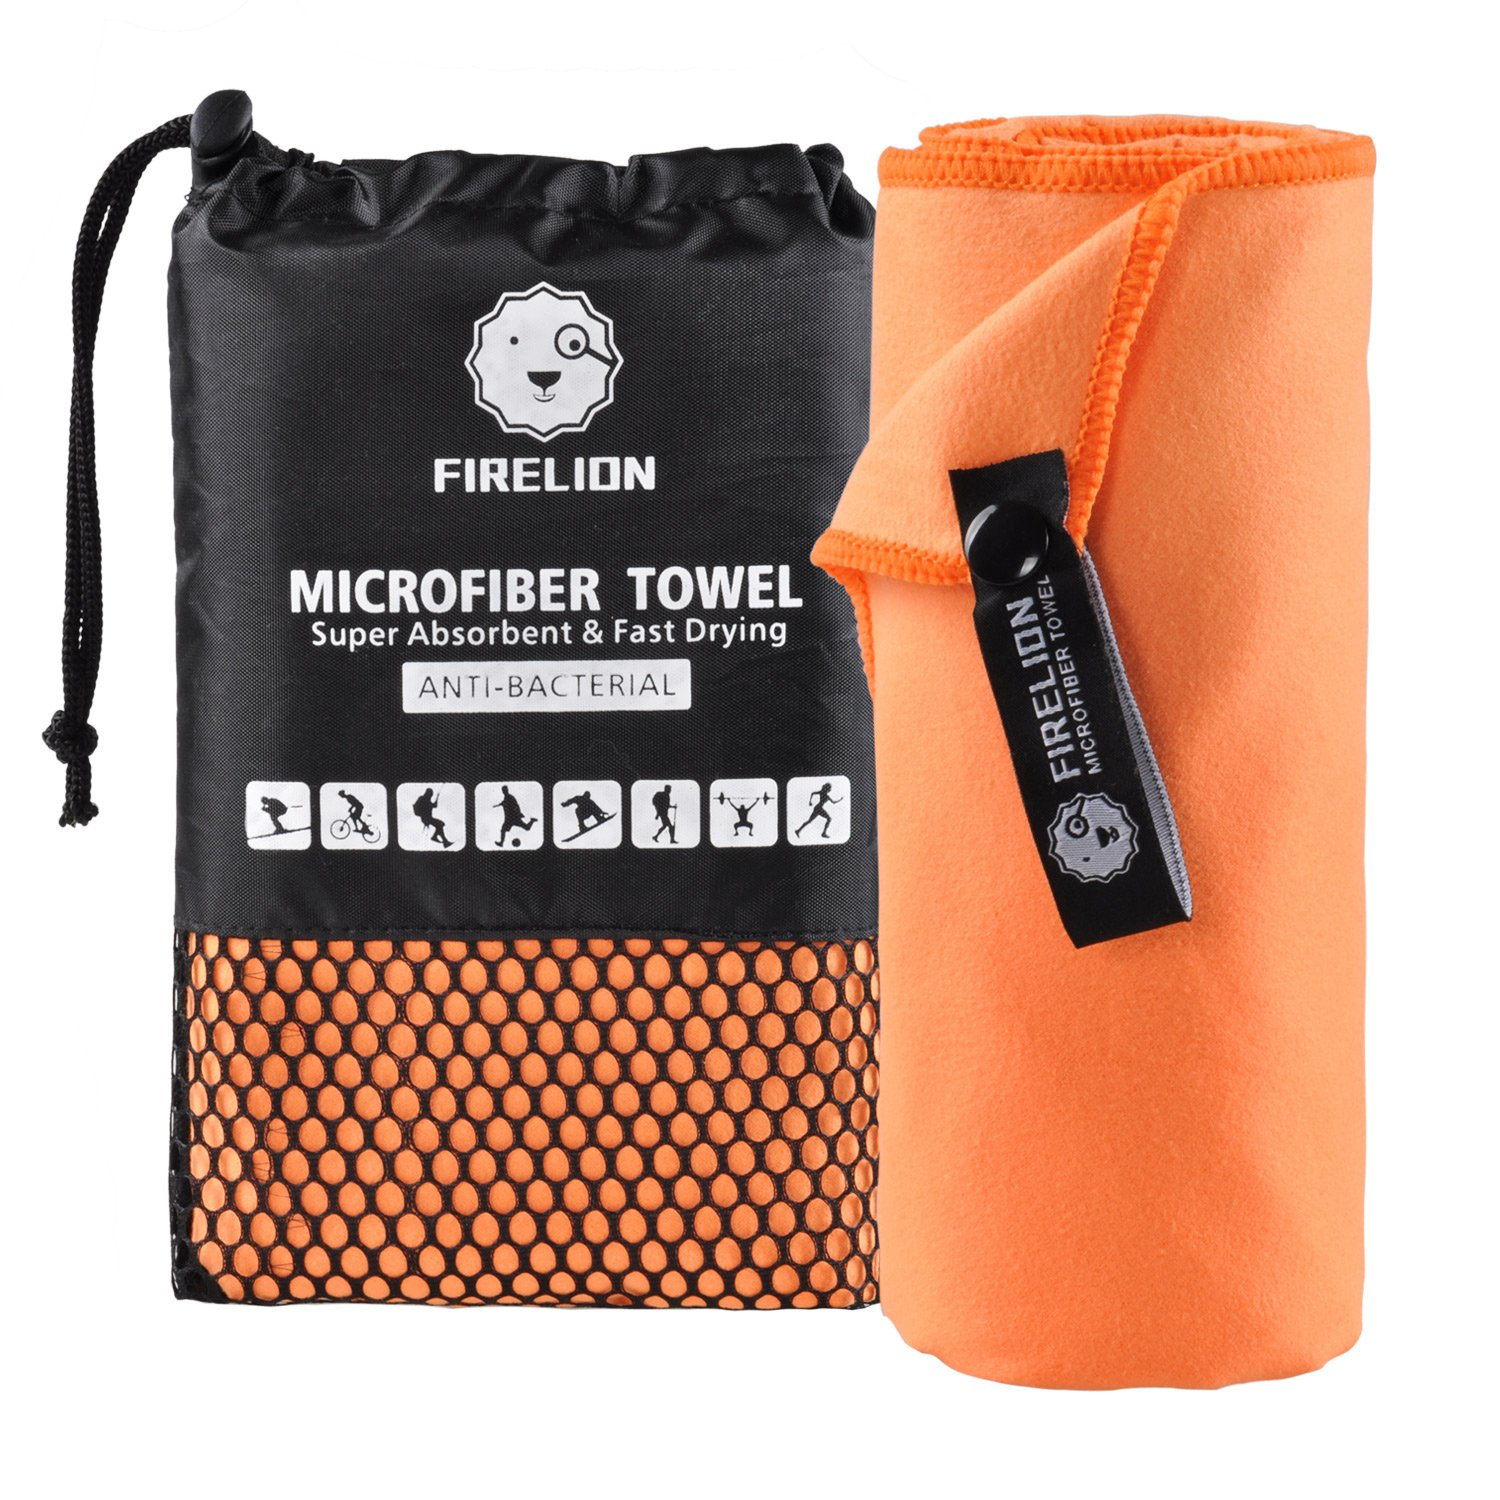 Backpacking Beach Hiking Suitable for Camping Gym Swimming Yoga FIRELION Microfiber Towels for Travel Sports Fast Drying Super Absorbent Ultra Soft Compact Lightweight Multi-Purpose